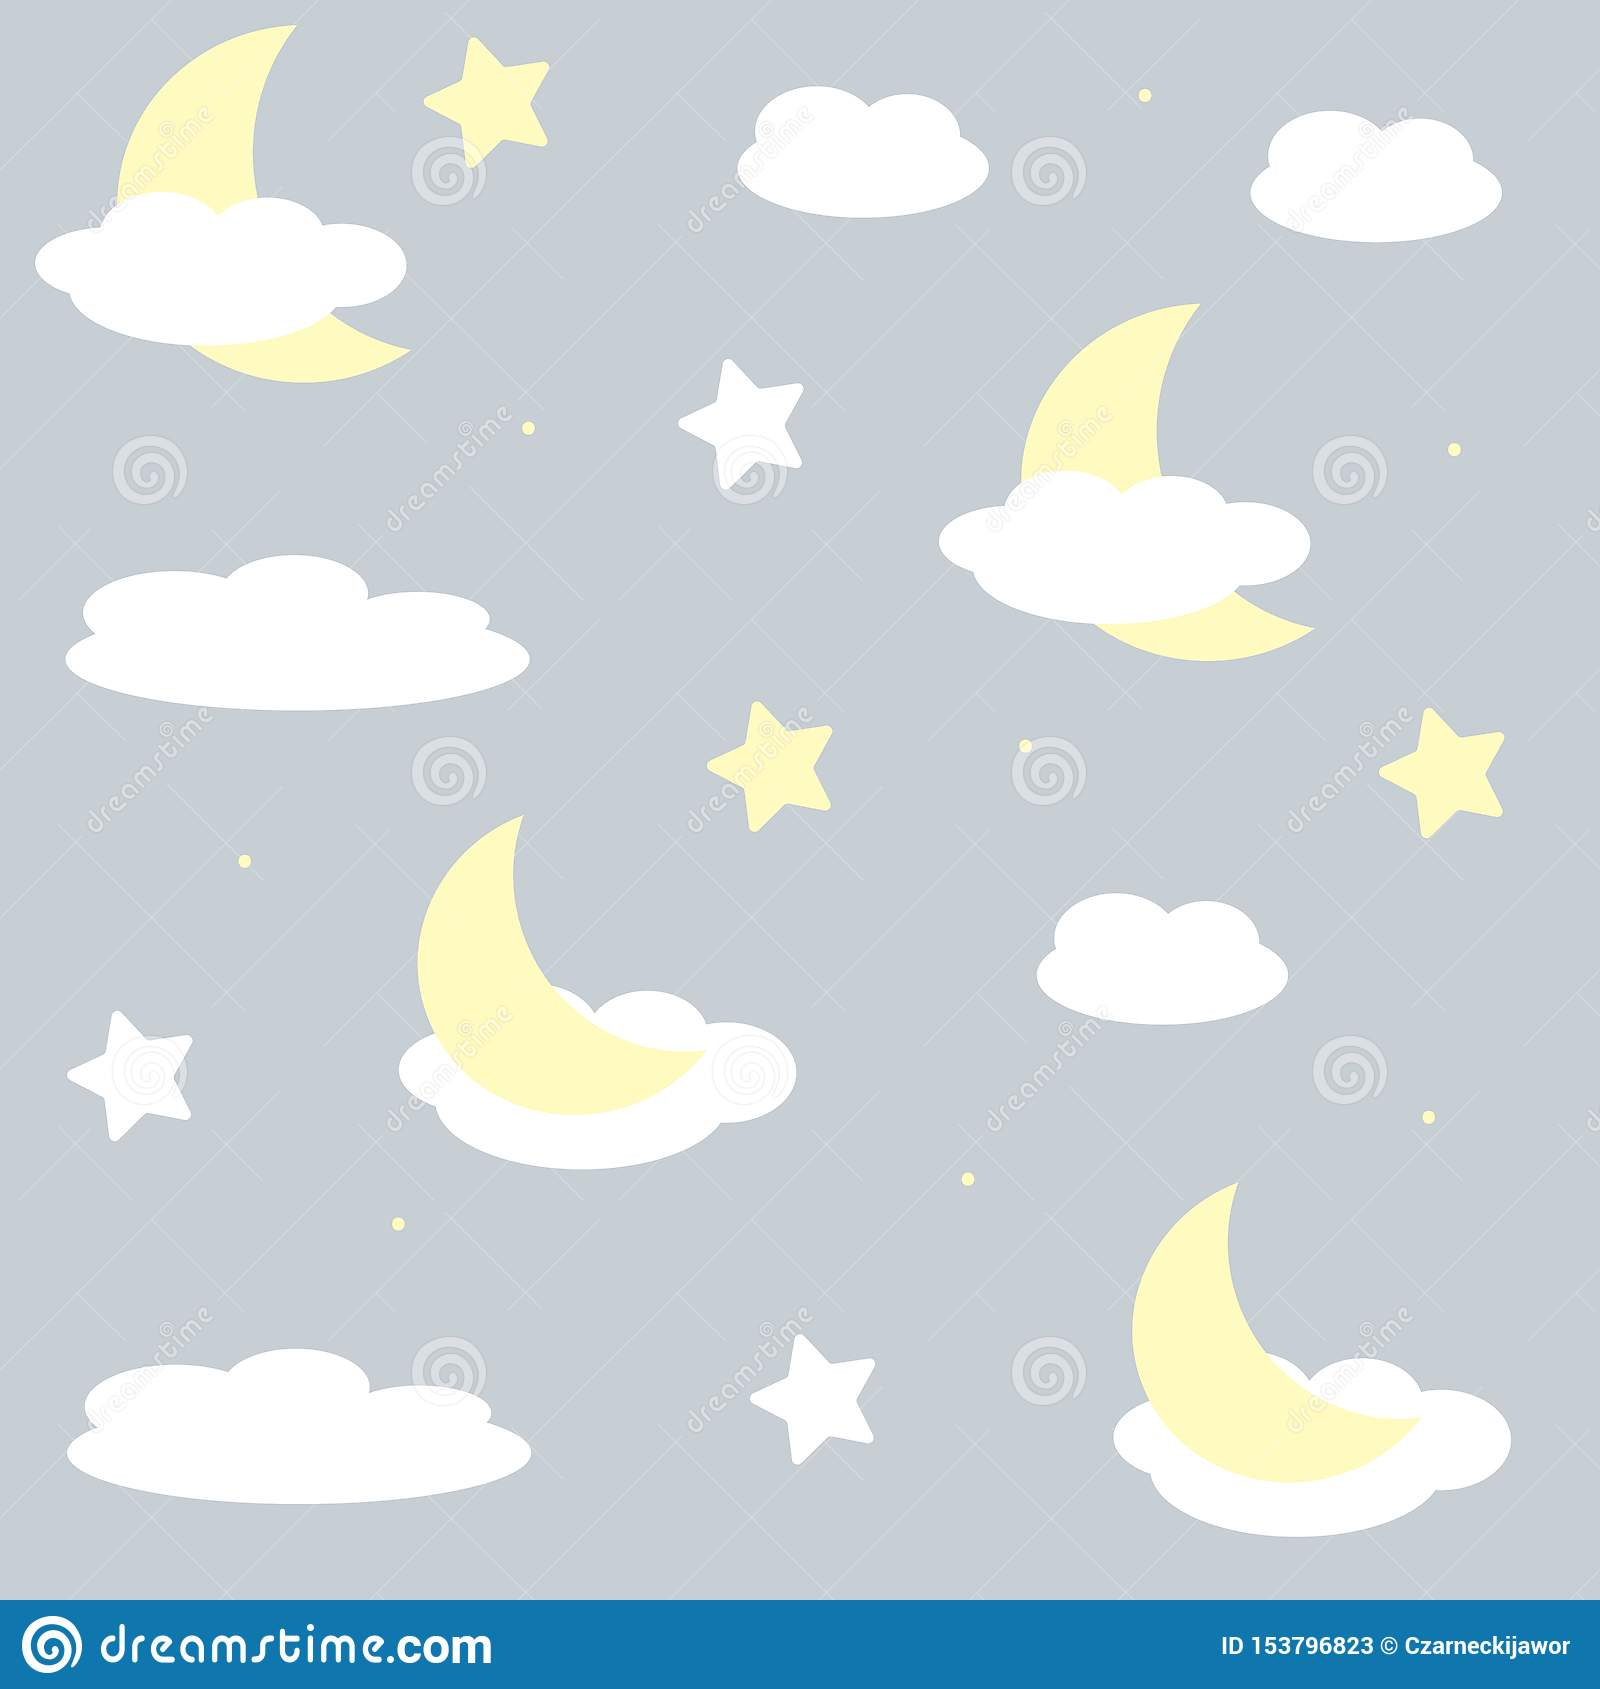 Nice seamles pattern for children. Vector illustration with stars and clouds.